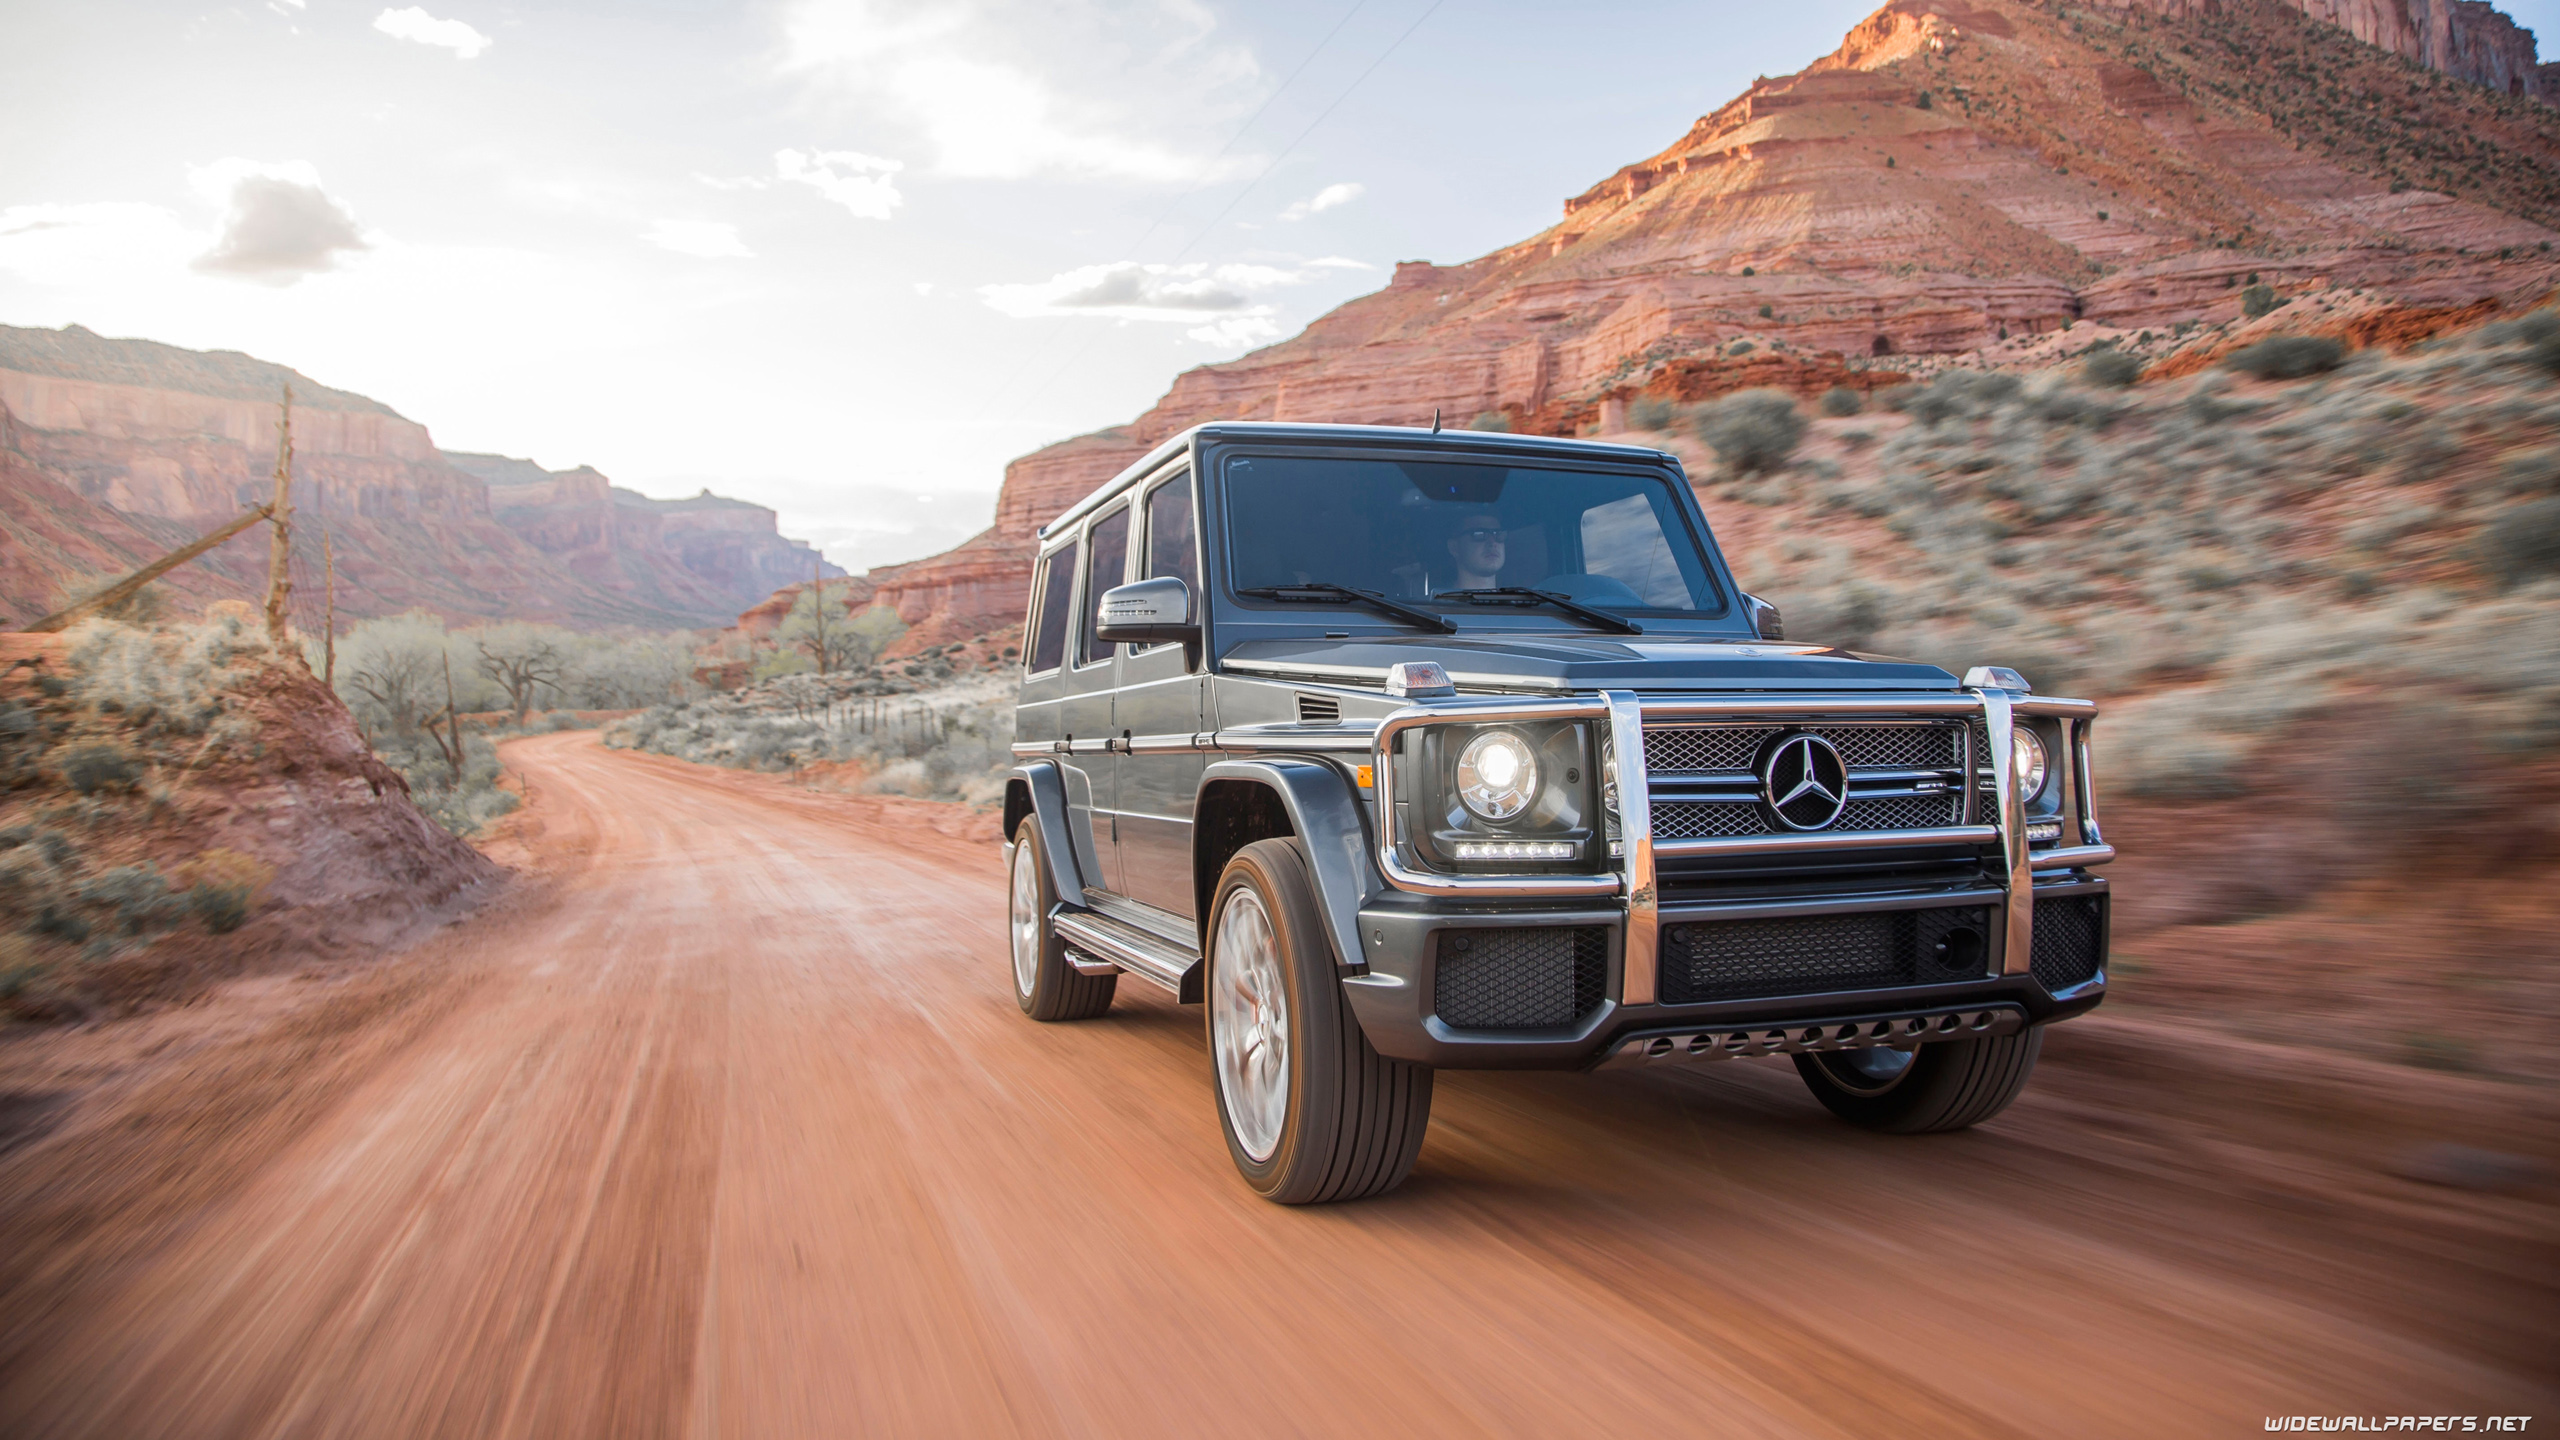 Mercedes benz g class cars desktop wallpapers 4k ultra hd for Mercedes benz g class amg